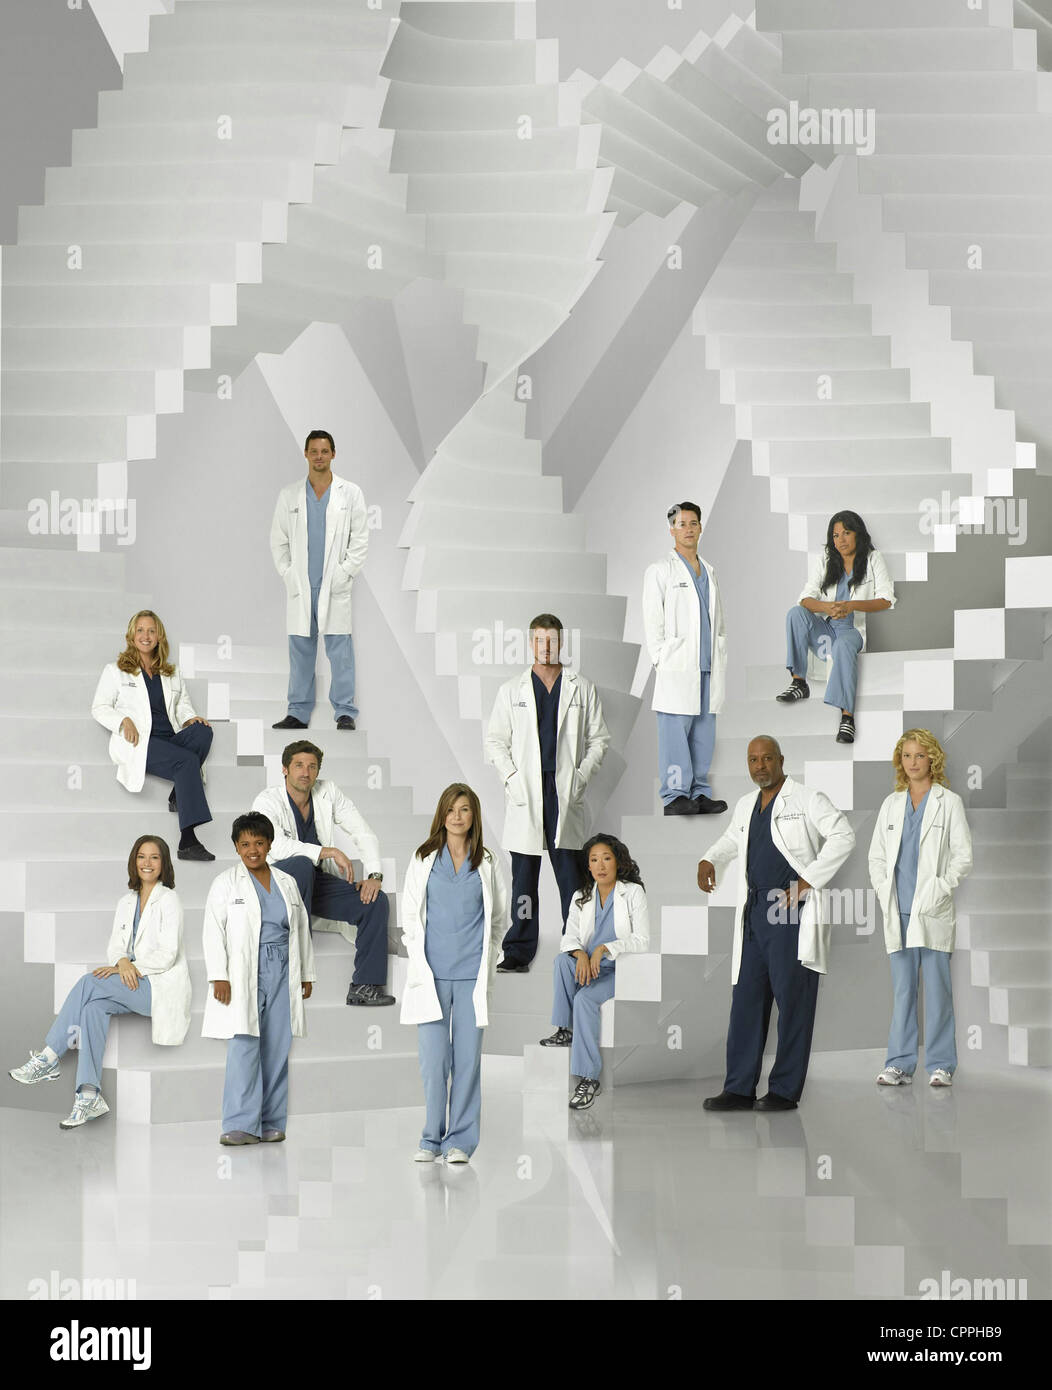 Greys Anatomy (Staffel 5 Stockfoto, Bild: 48439757 - Alamy